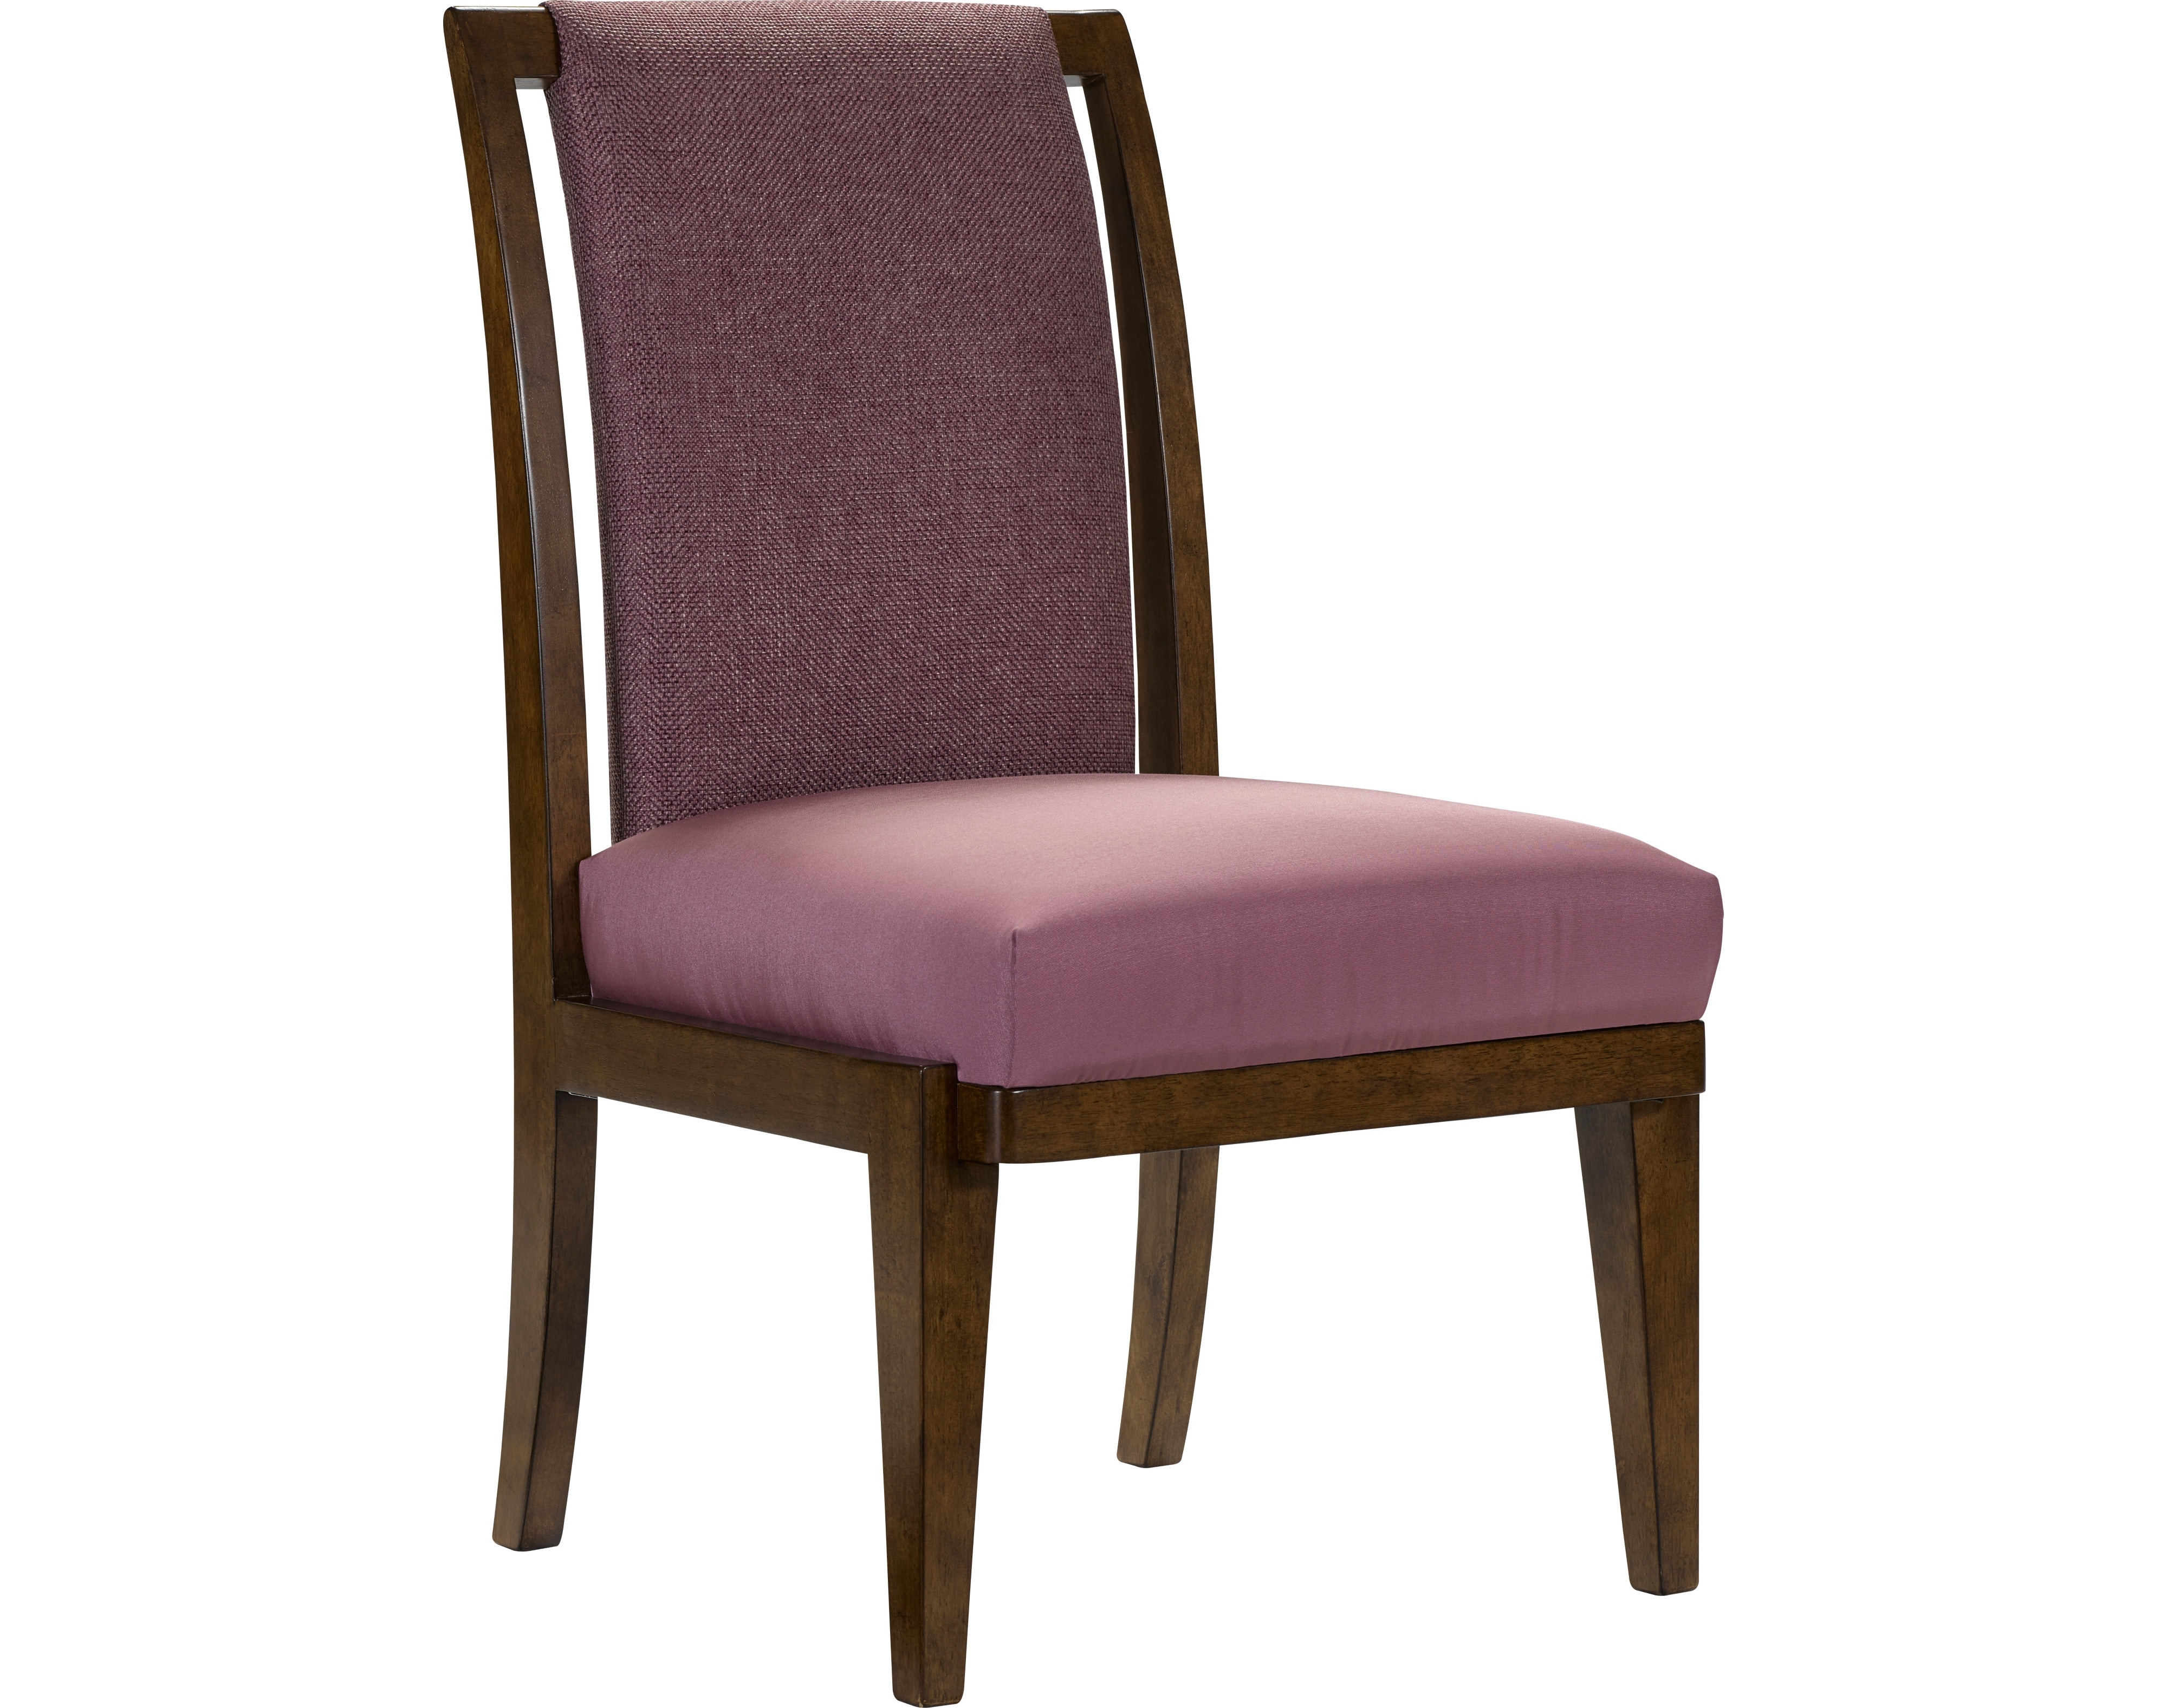 Drexel Sherman Side Chair 930 751 From Walter E. Smithe Furniture + Design